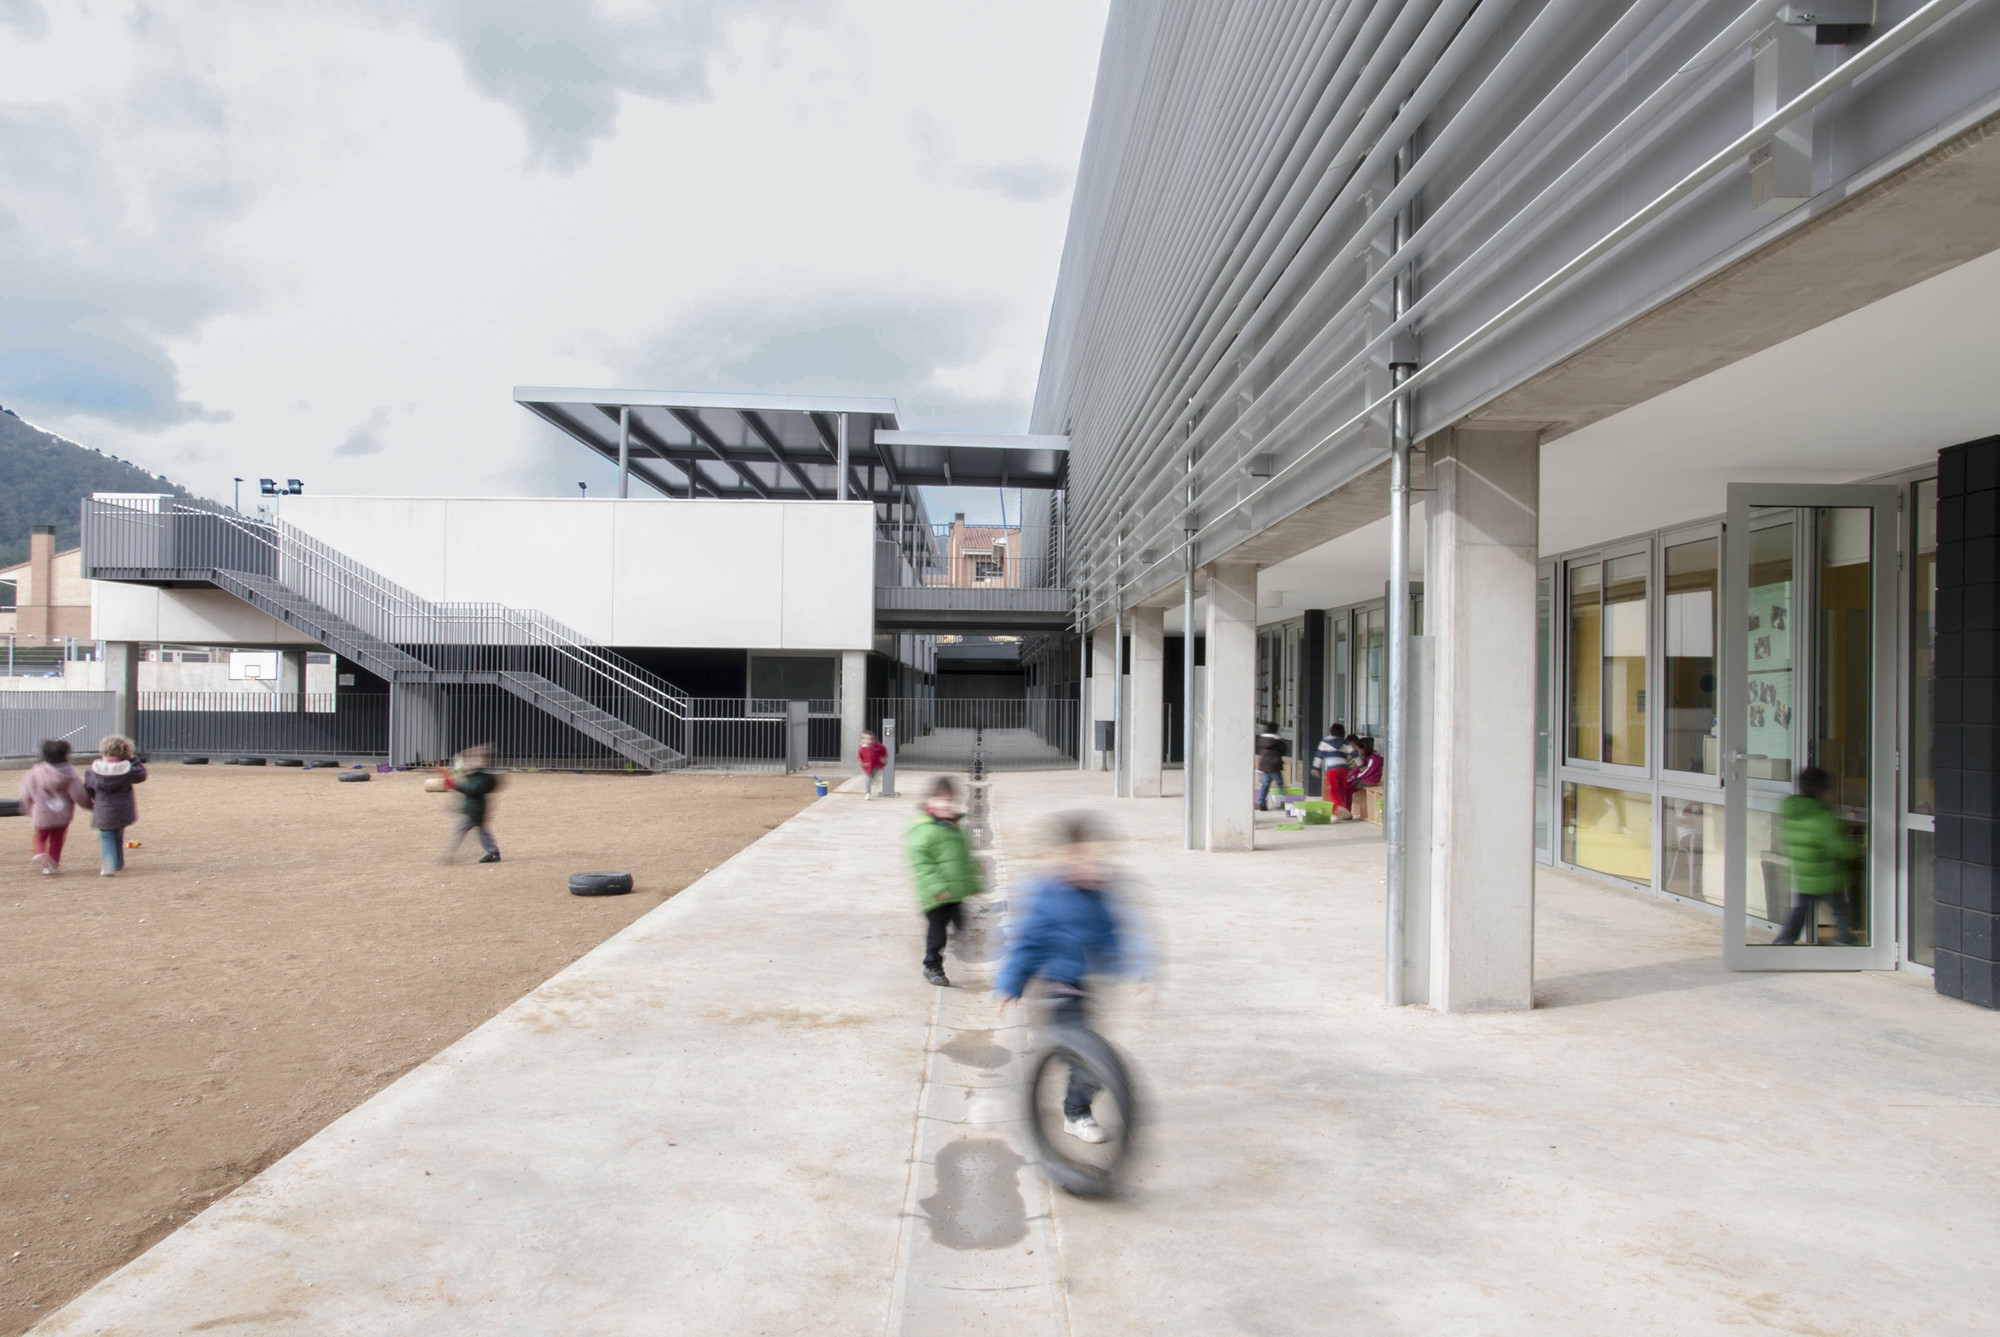 New Cervelló School / BCQ Arquitectura, Courtesy of BCQ Arquitectura